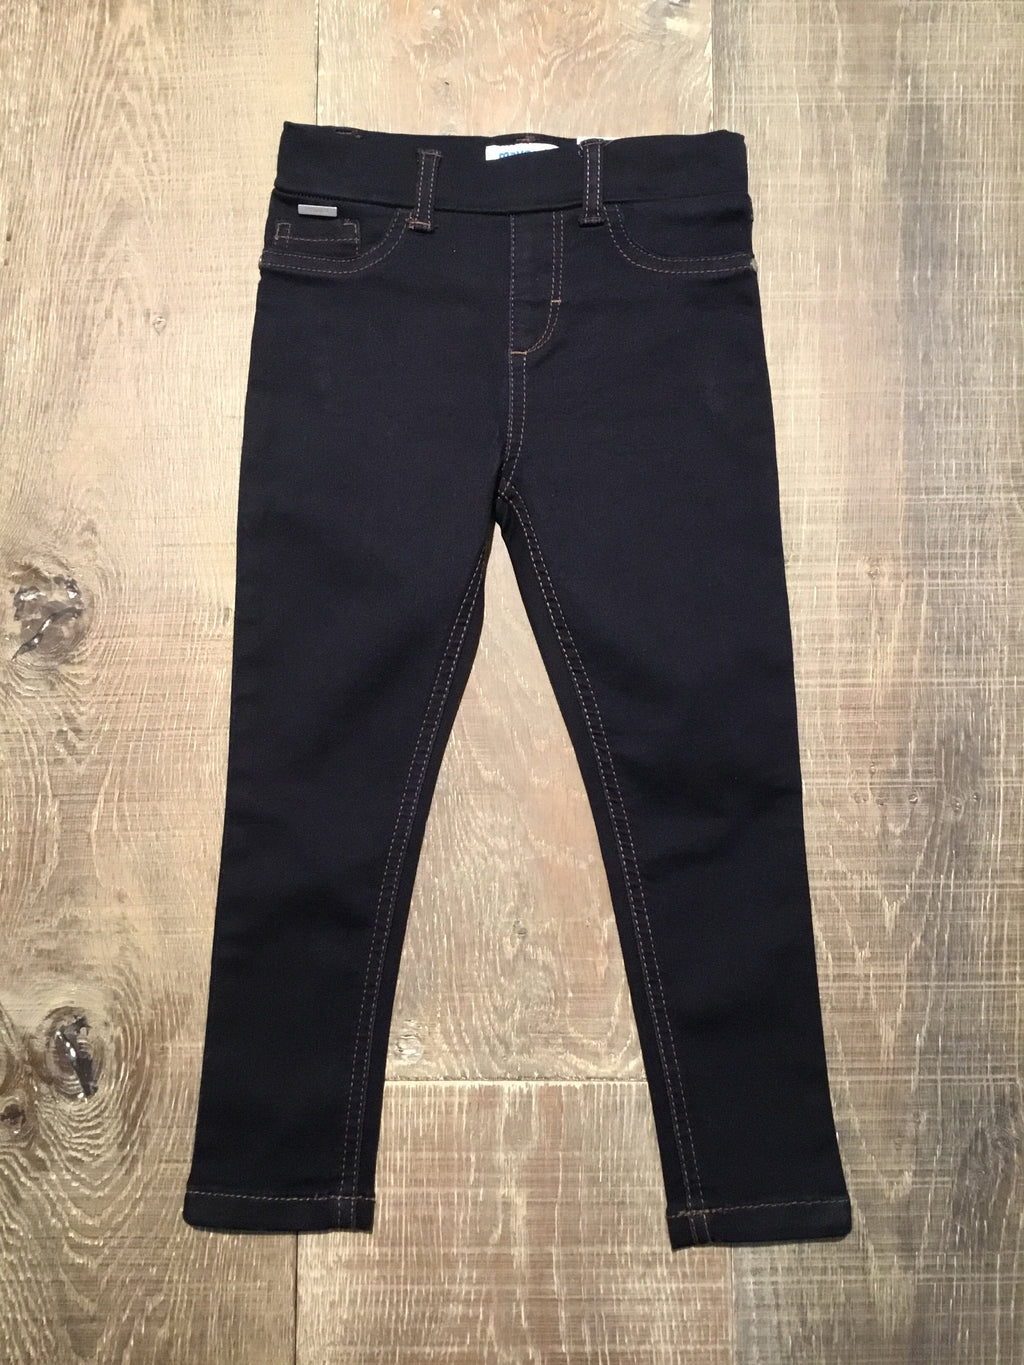 Super Skinny Dark Denim Pants